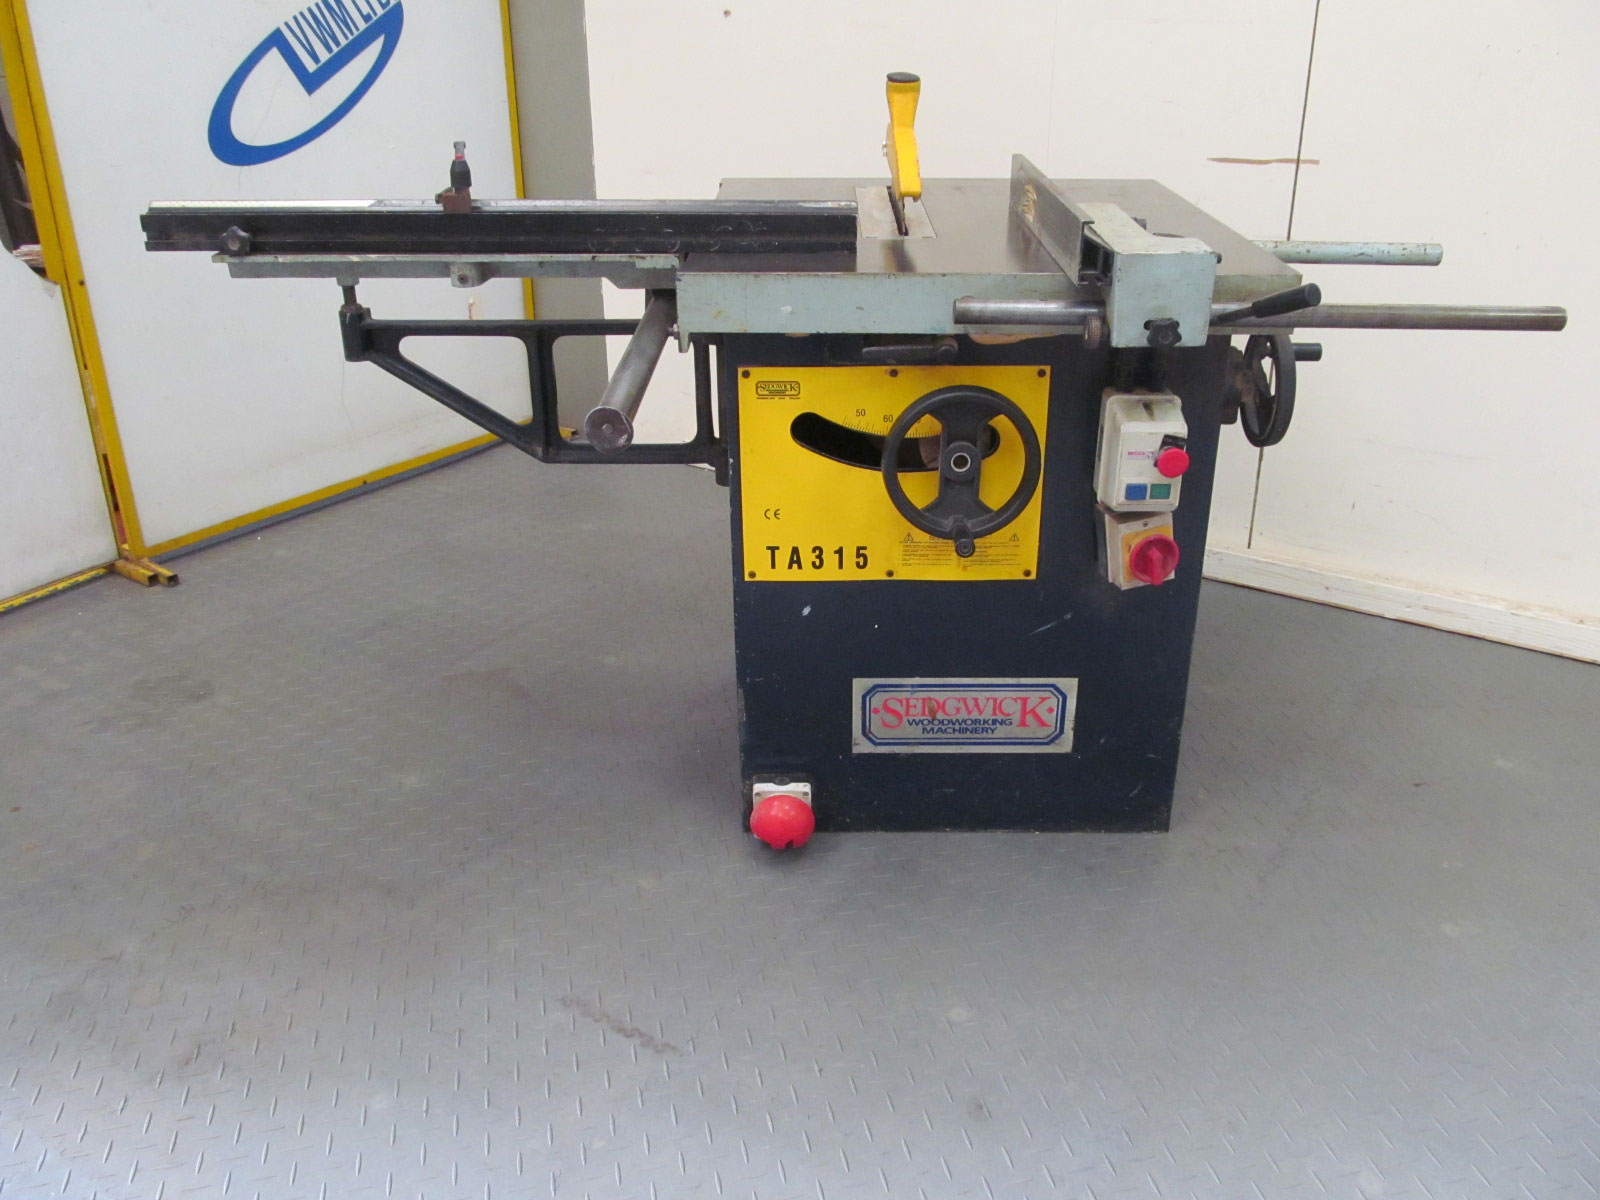 Sedgwick TA315 ripsaw with sliding table